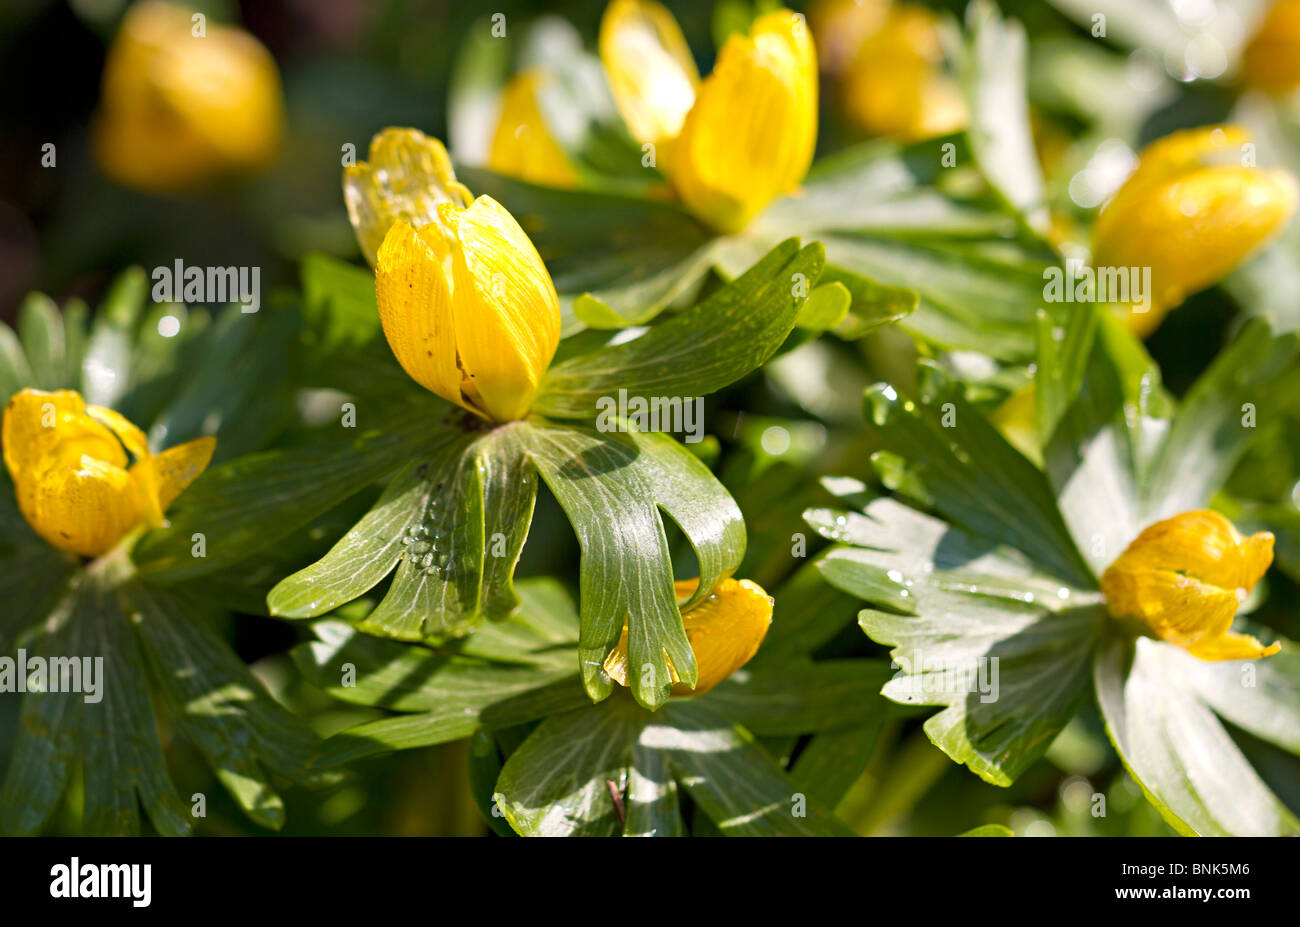 Aconite Flowers Stock Photos Aconite Flowers Stock Images Alamy